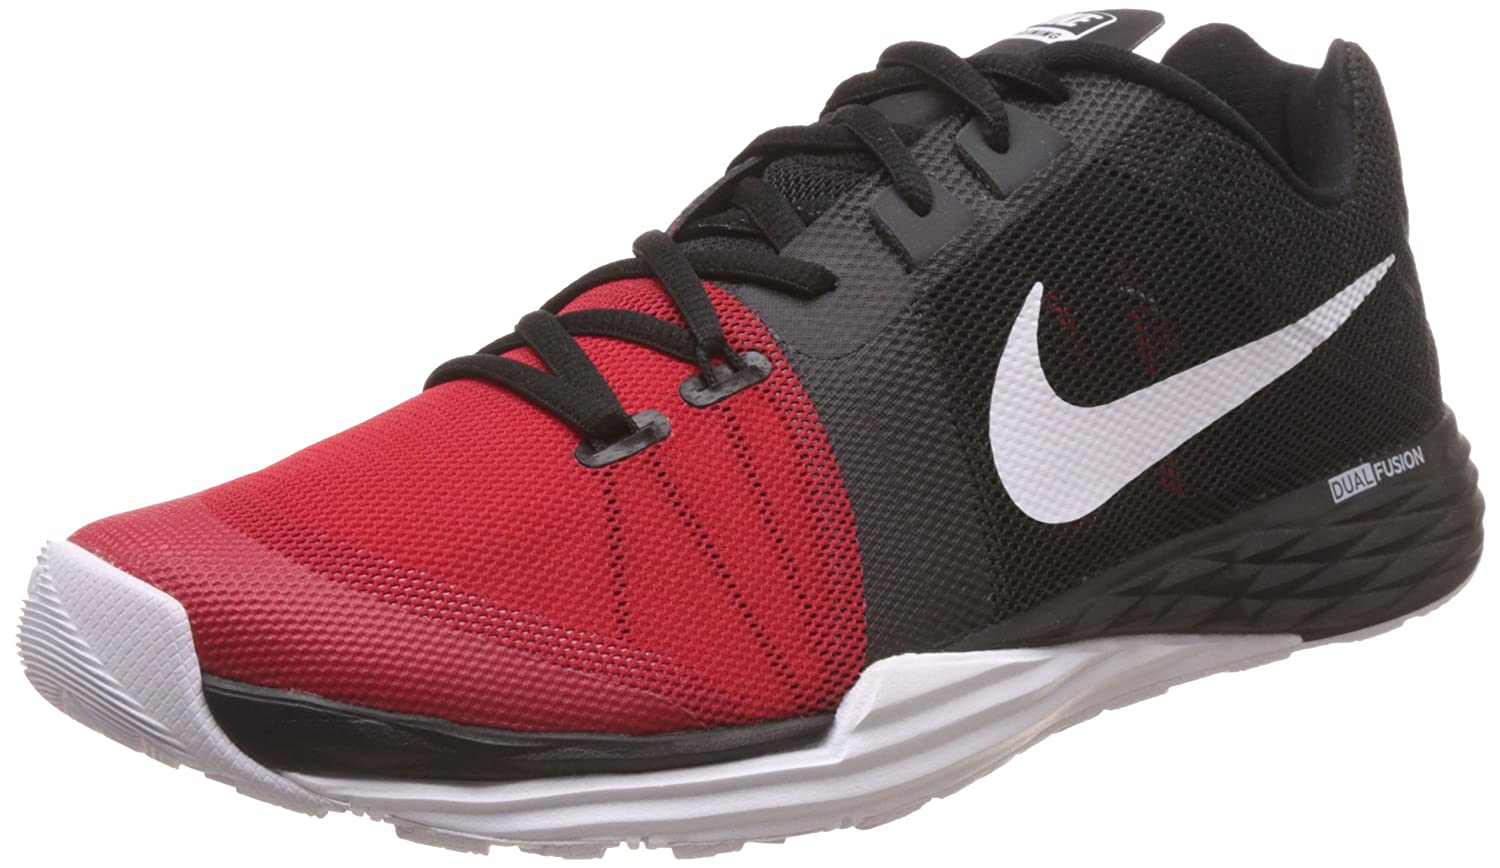 Nike Herren Train Prime Iron Df Turnschuhe